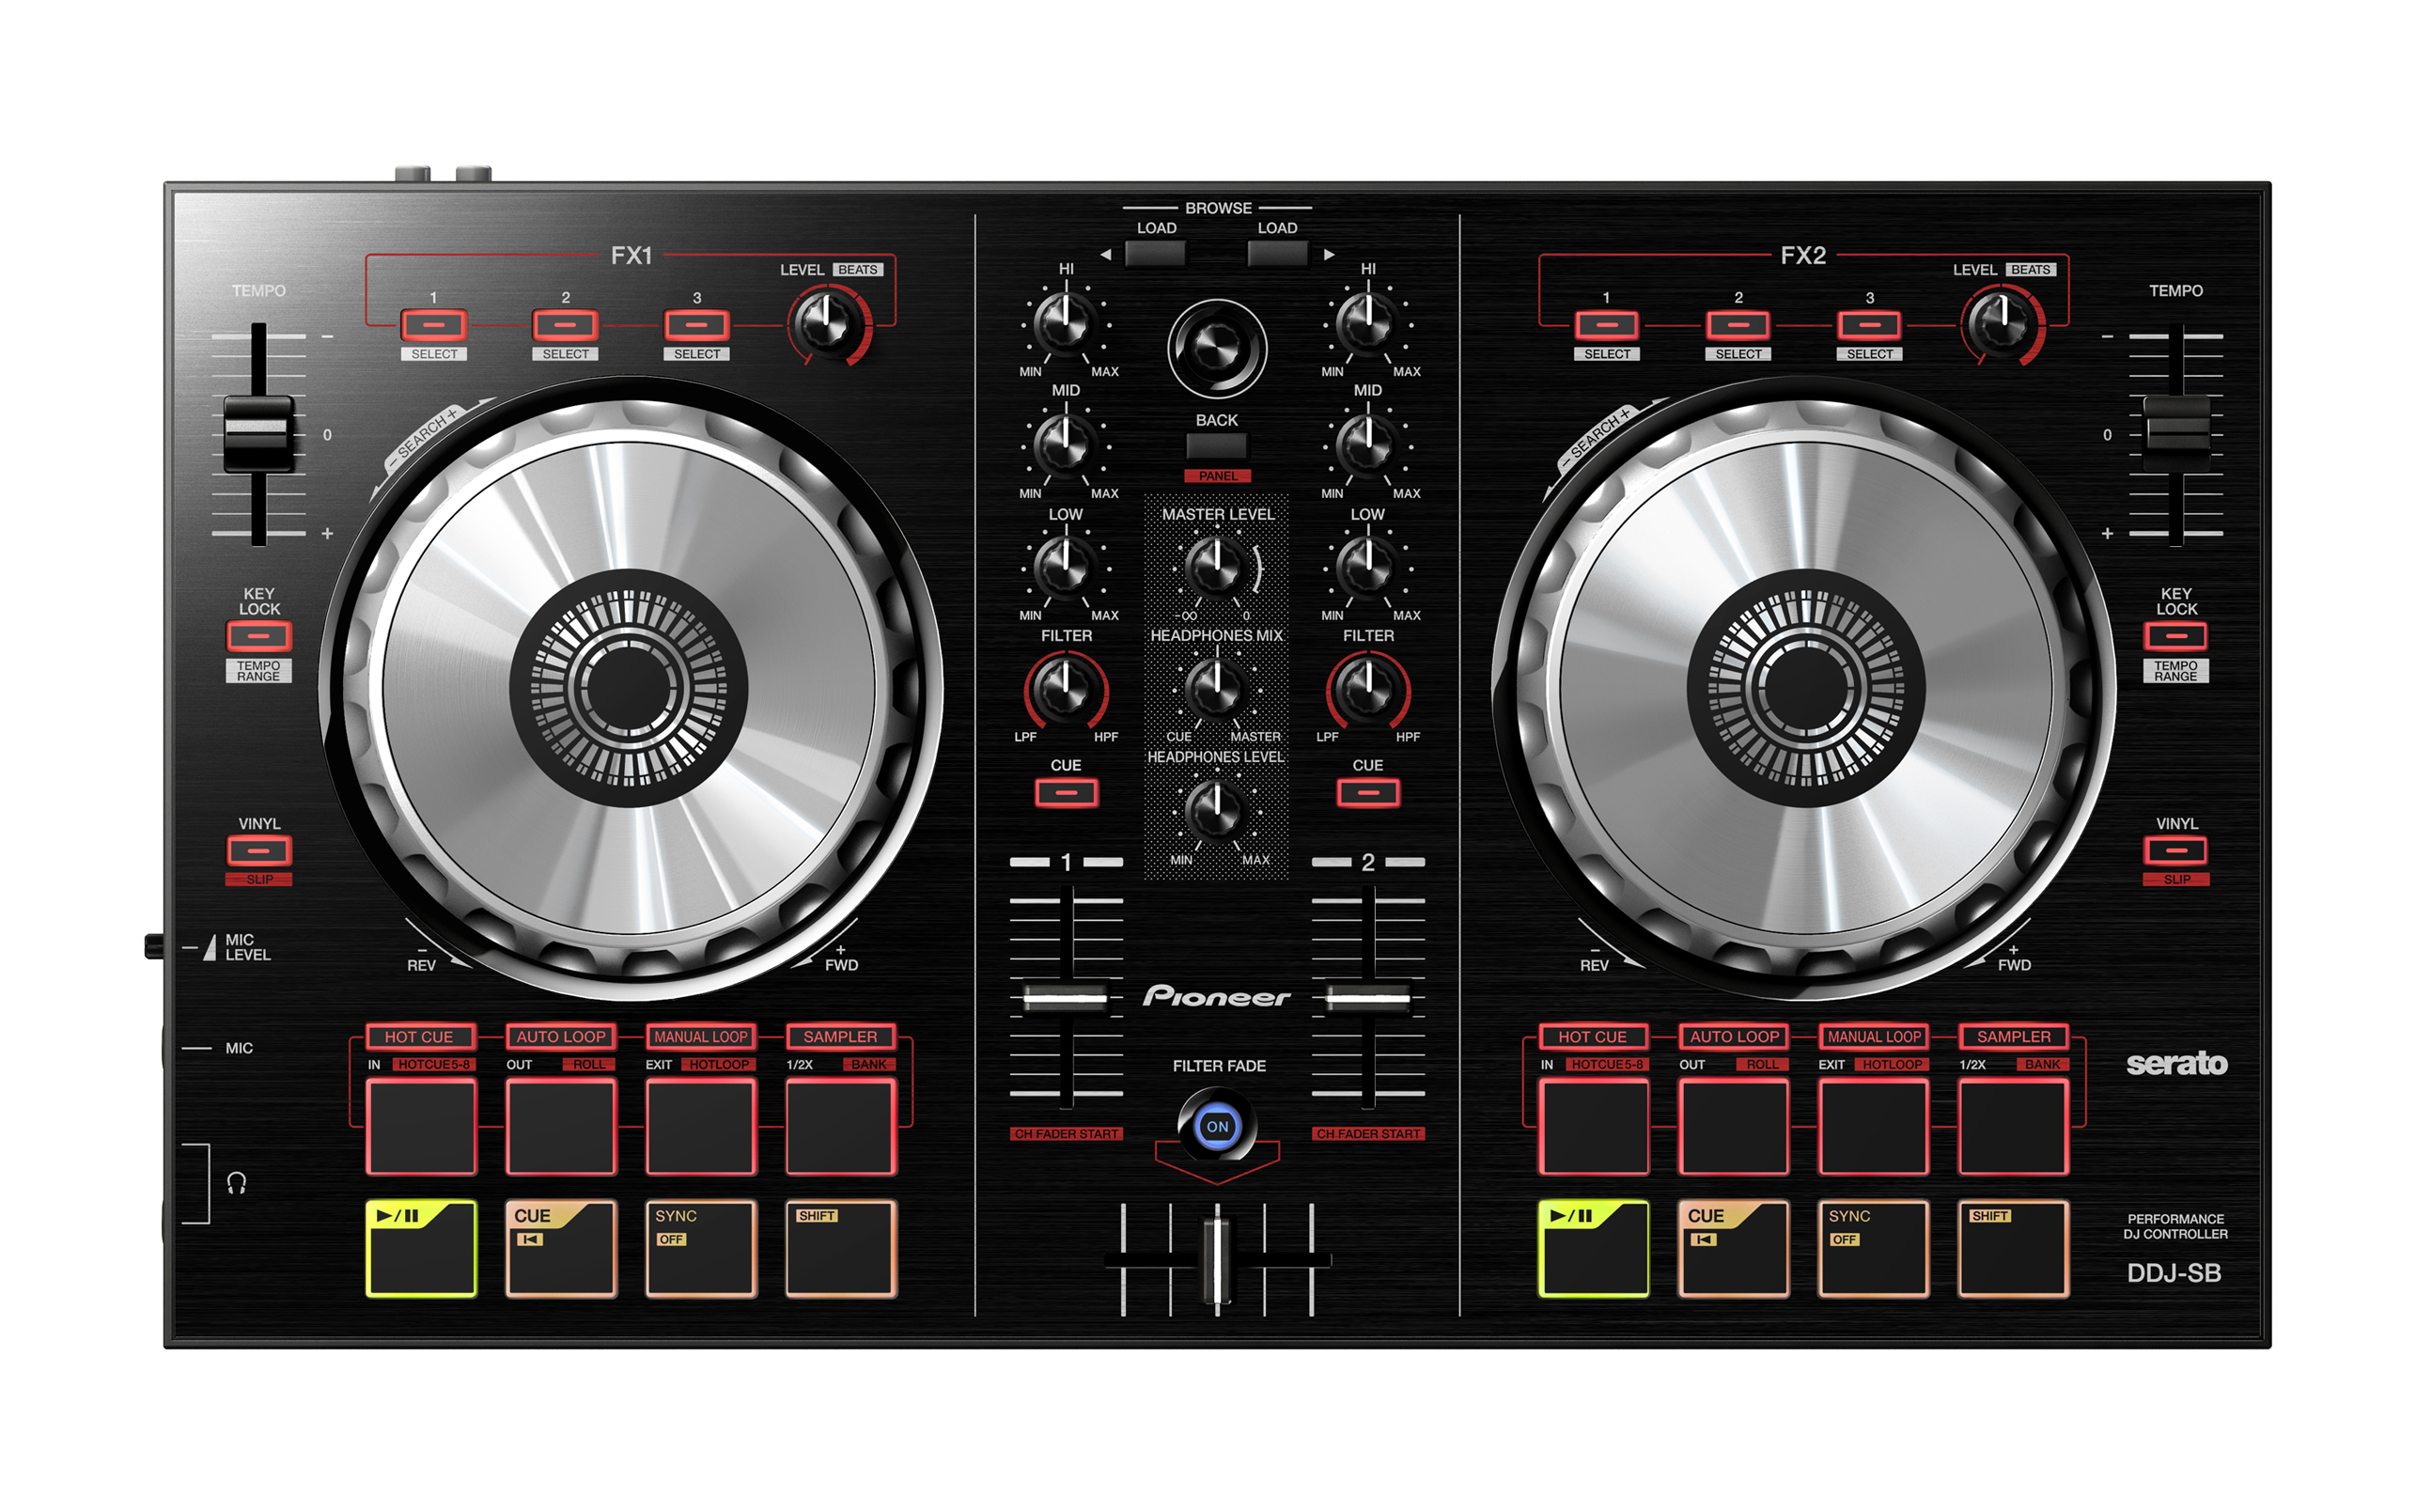 The Pioneer DDJ-SB is the company's entry level controller for beginner and home DJs. It has the basic functionality of its fuller featured siblings the DDJ-SR and SX at an attractive price point.